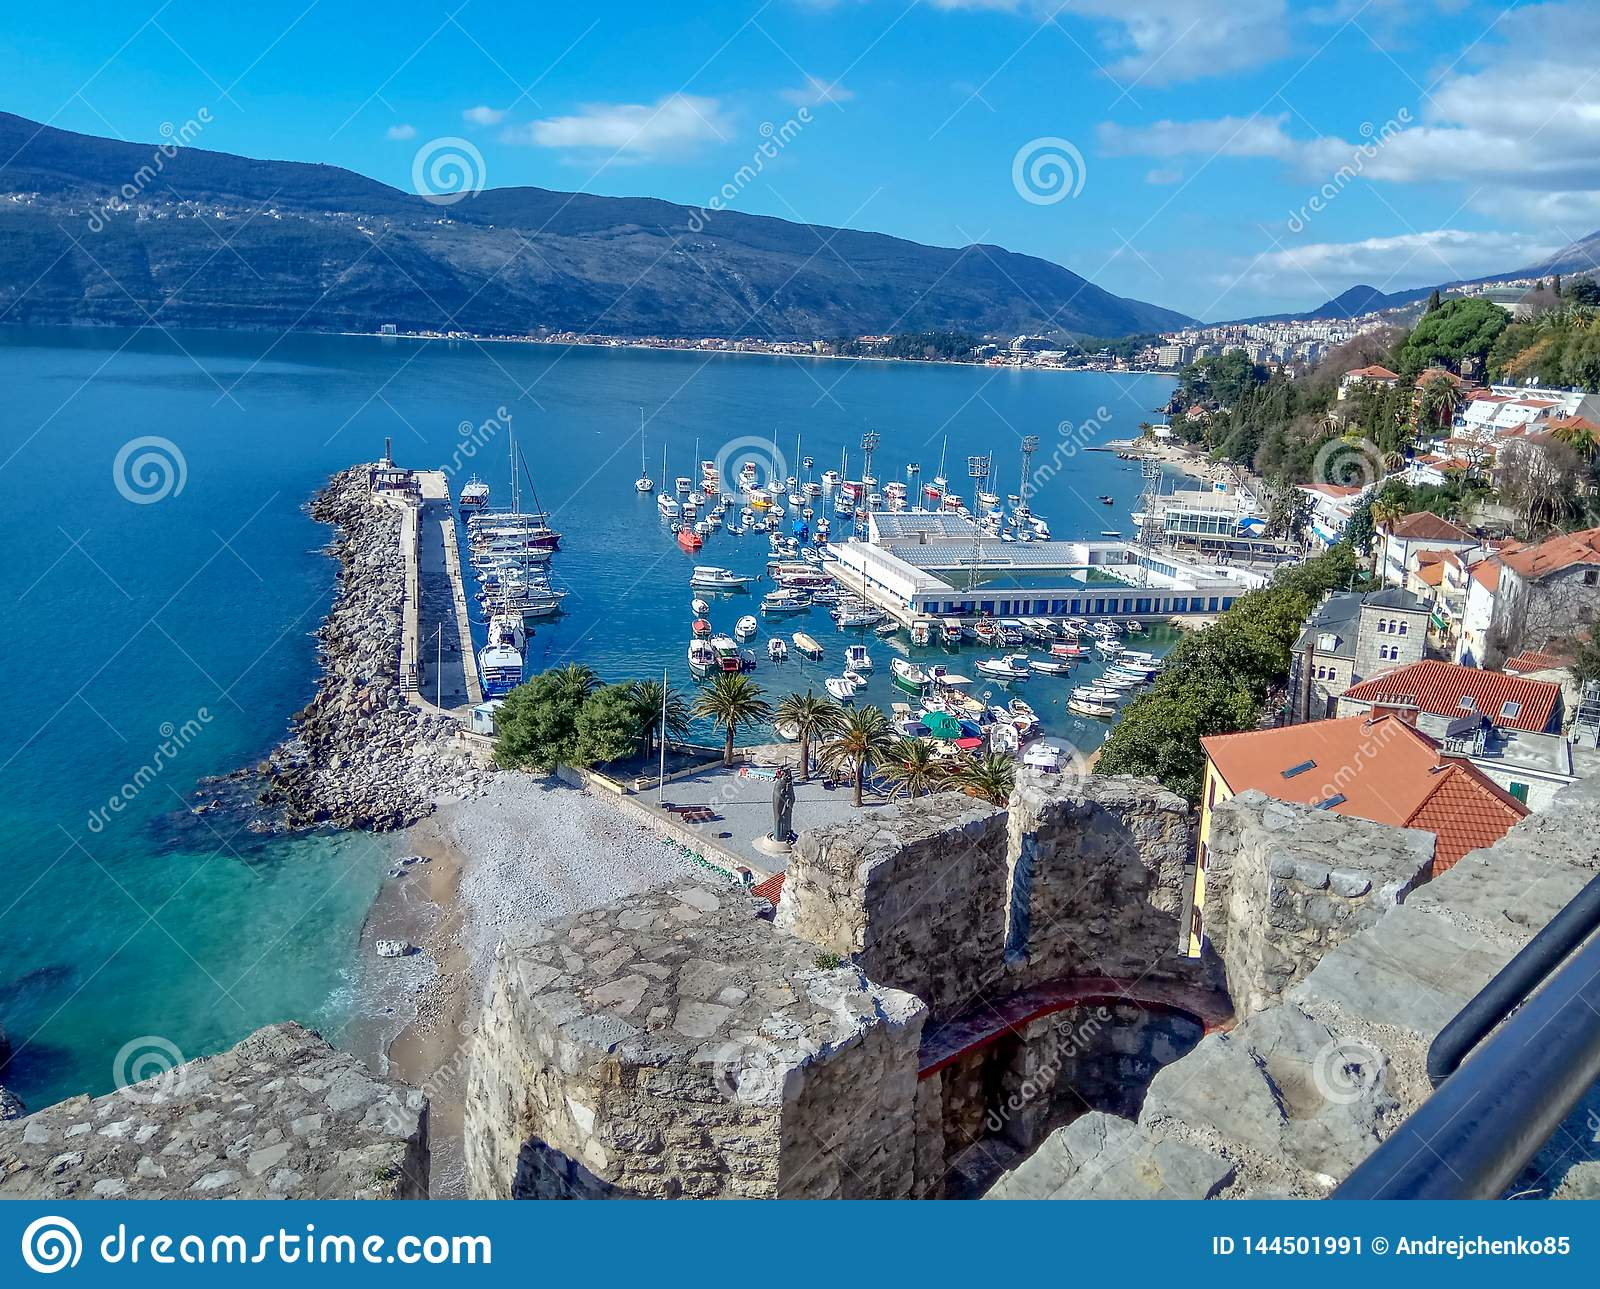 Herceg-Novi, Montenegro: city center near the water in the area with a yacht harbour and swimming pool